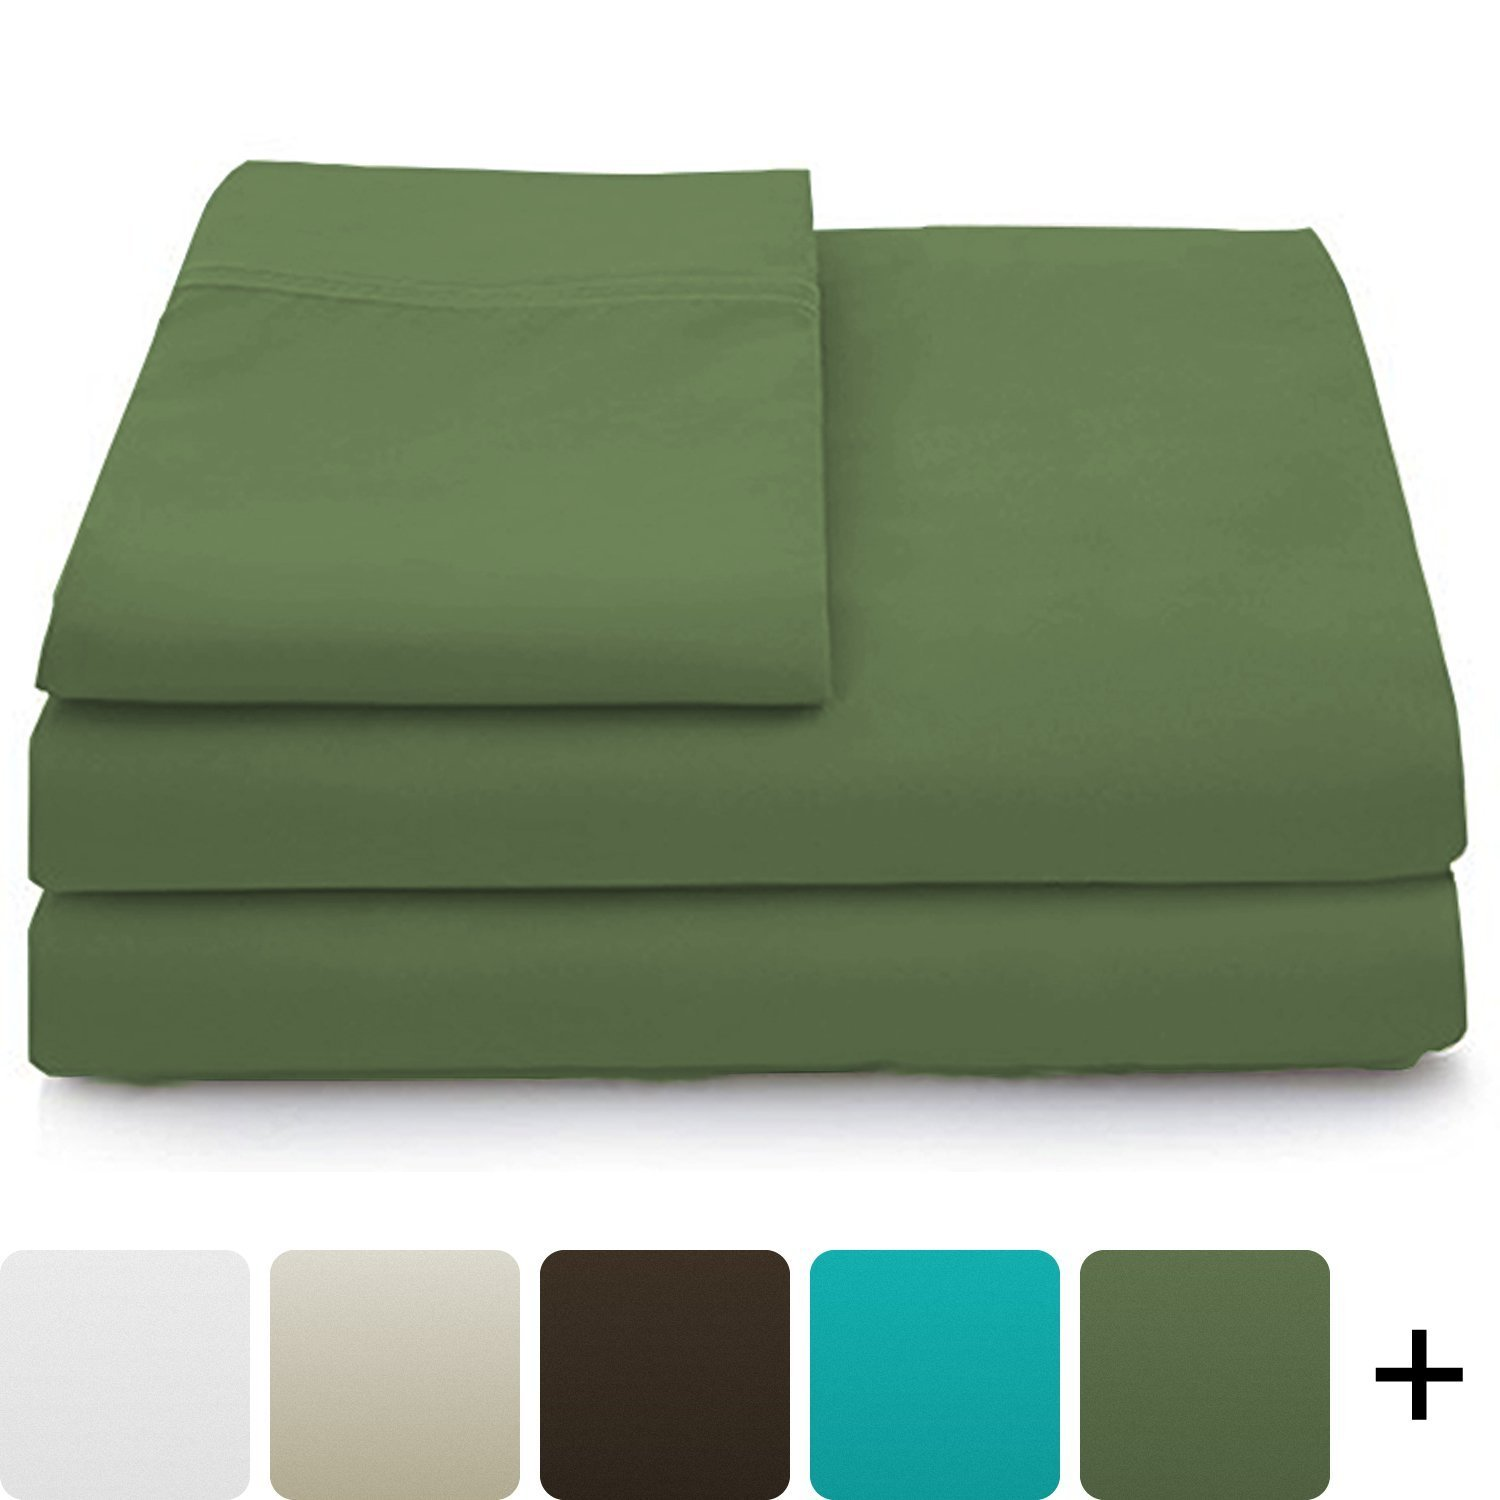 Cosy House Collection Luxury Bamboo Bed Sheet Set - Hypoallergenic Bedding Blend from Natural Bamboo Fiber - Resists Wrinkles - 4 Piece - 1 Fitted Sheet, 1 Flat, 2 Pillowcases - Queen, Sage Green